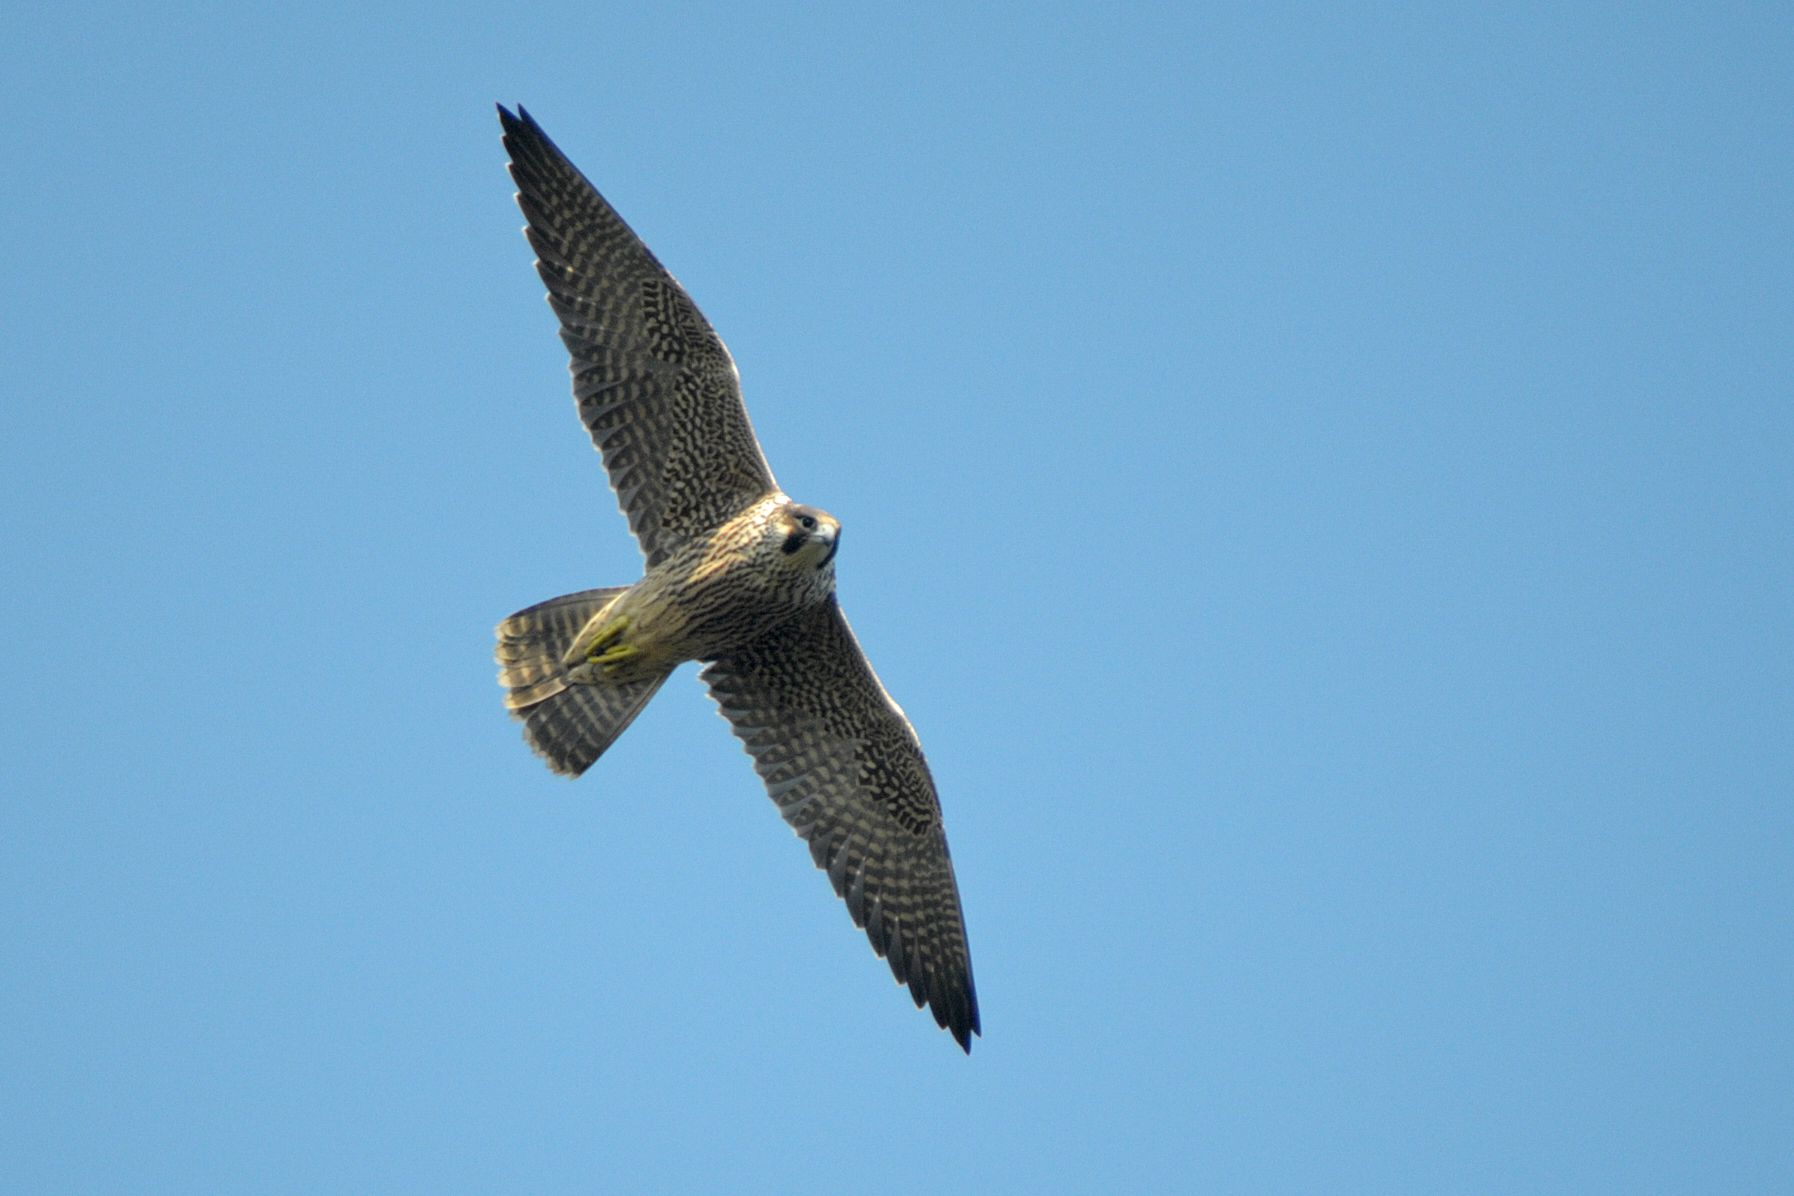 Juvenile peregrine. Photo by Romano da Costa